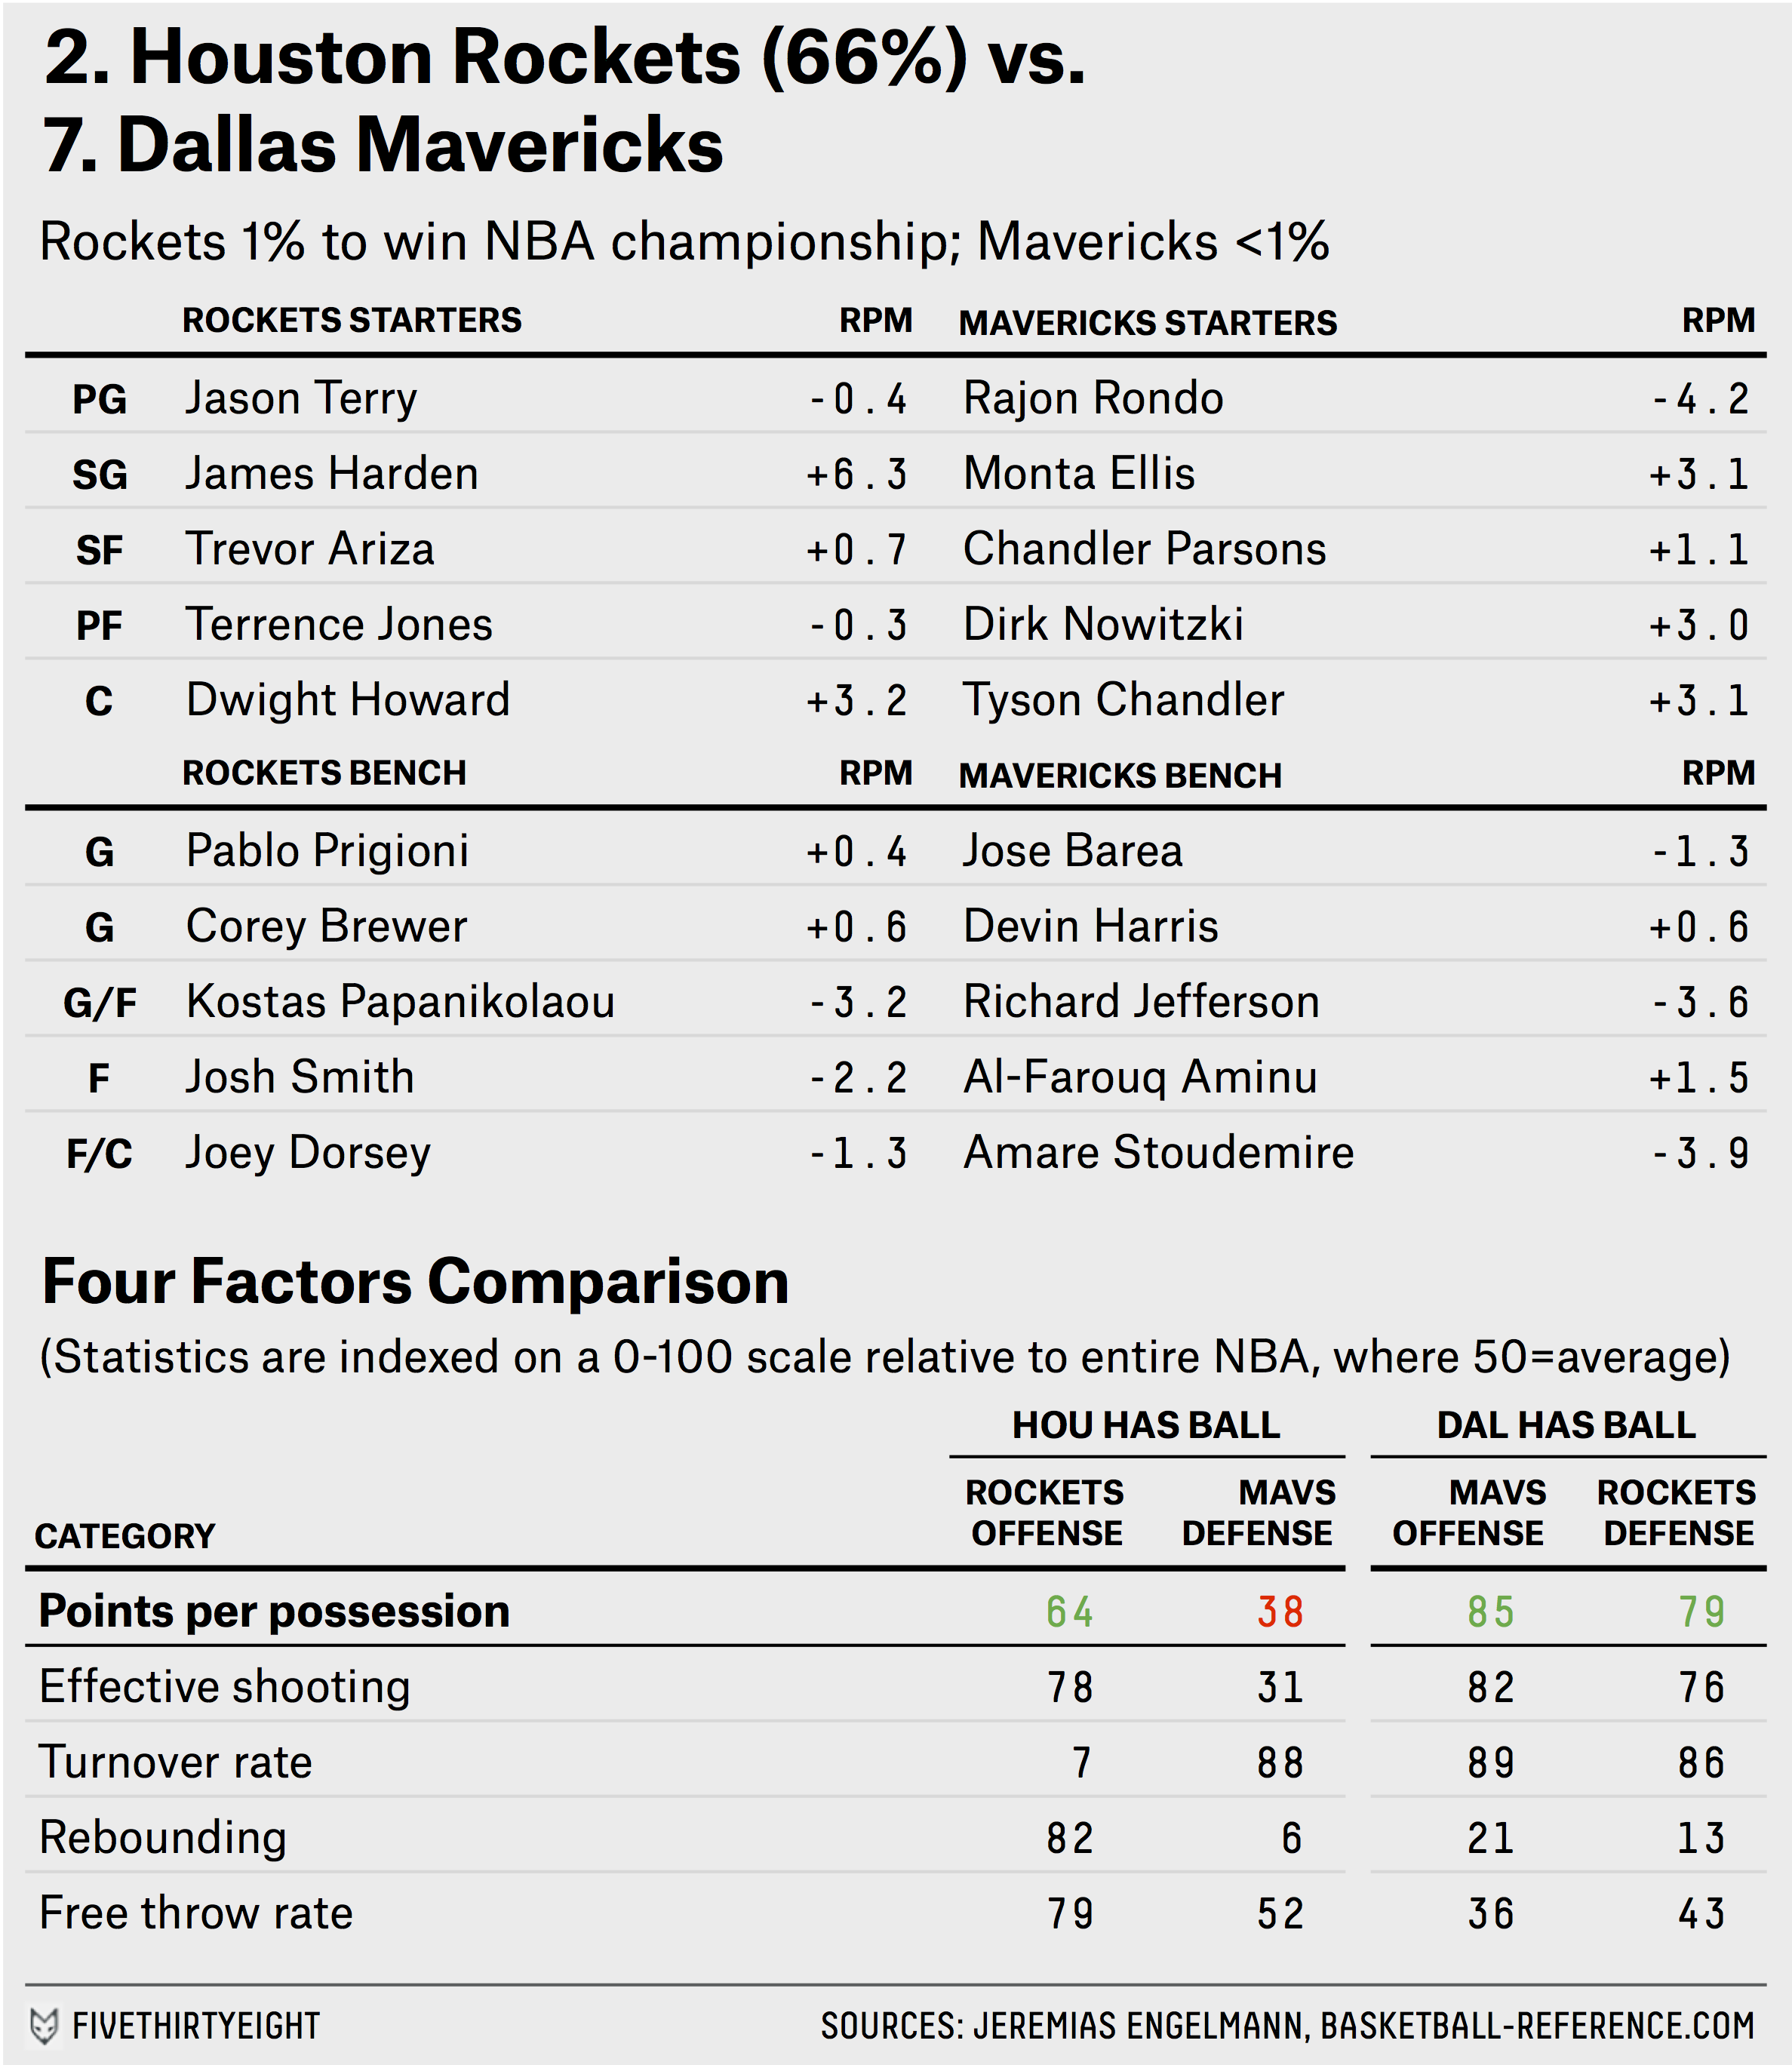 Nba playoffs preview fivethirtyeight png 2375x2737 Playoff nba structure dfeb2efd9